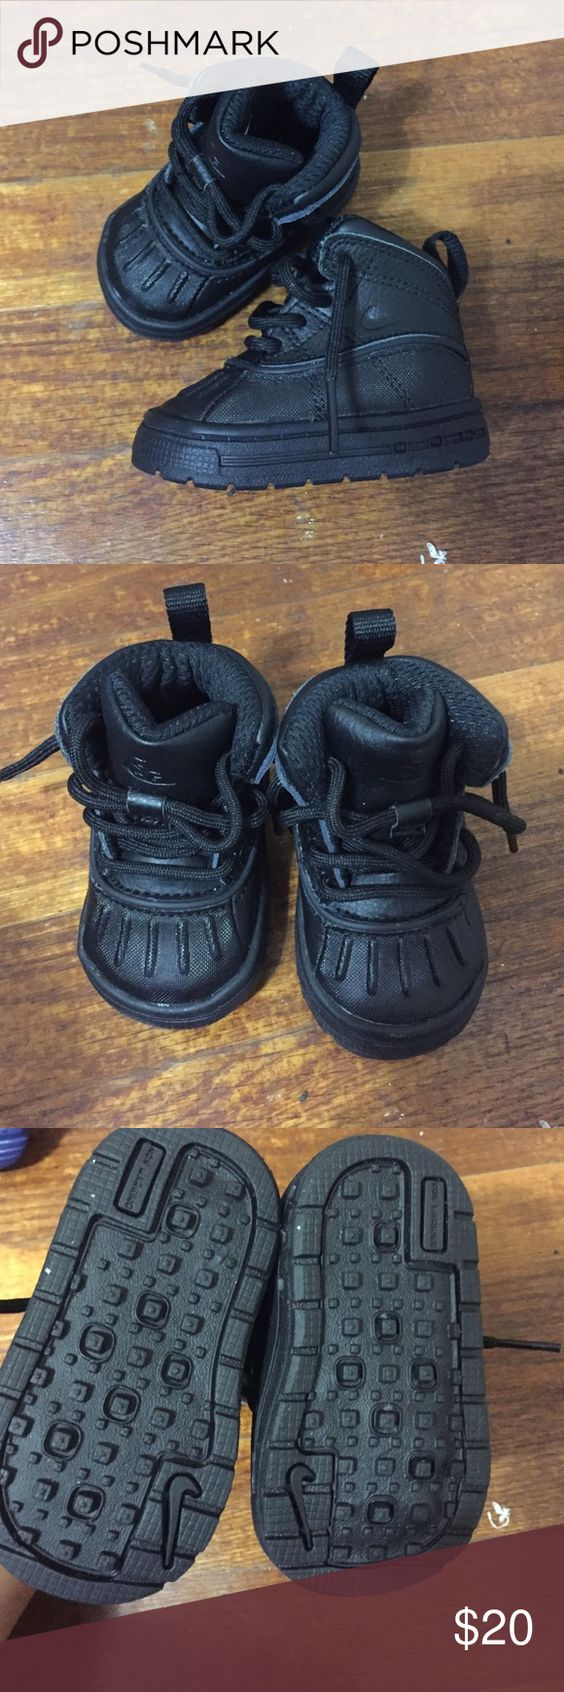 Nike ACG Boots (infant/Toddler) Nike ACG Boots Nike Shoes Boots